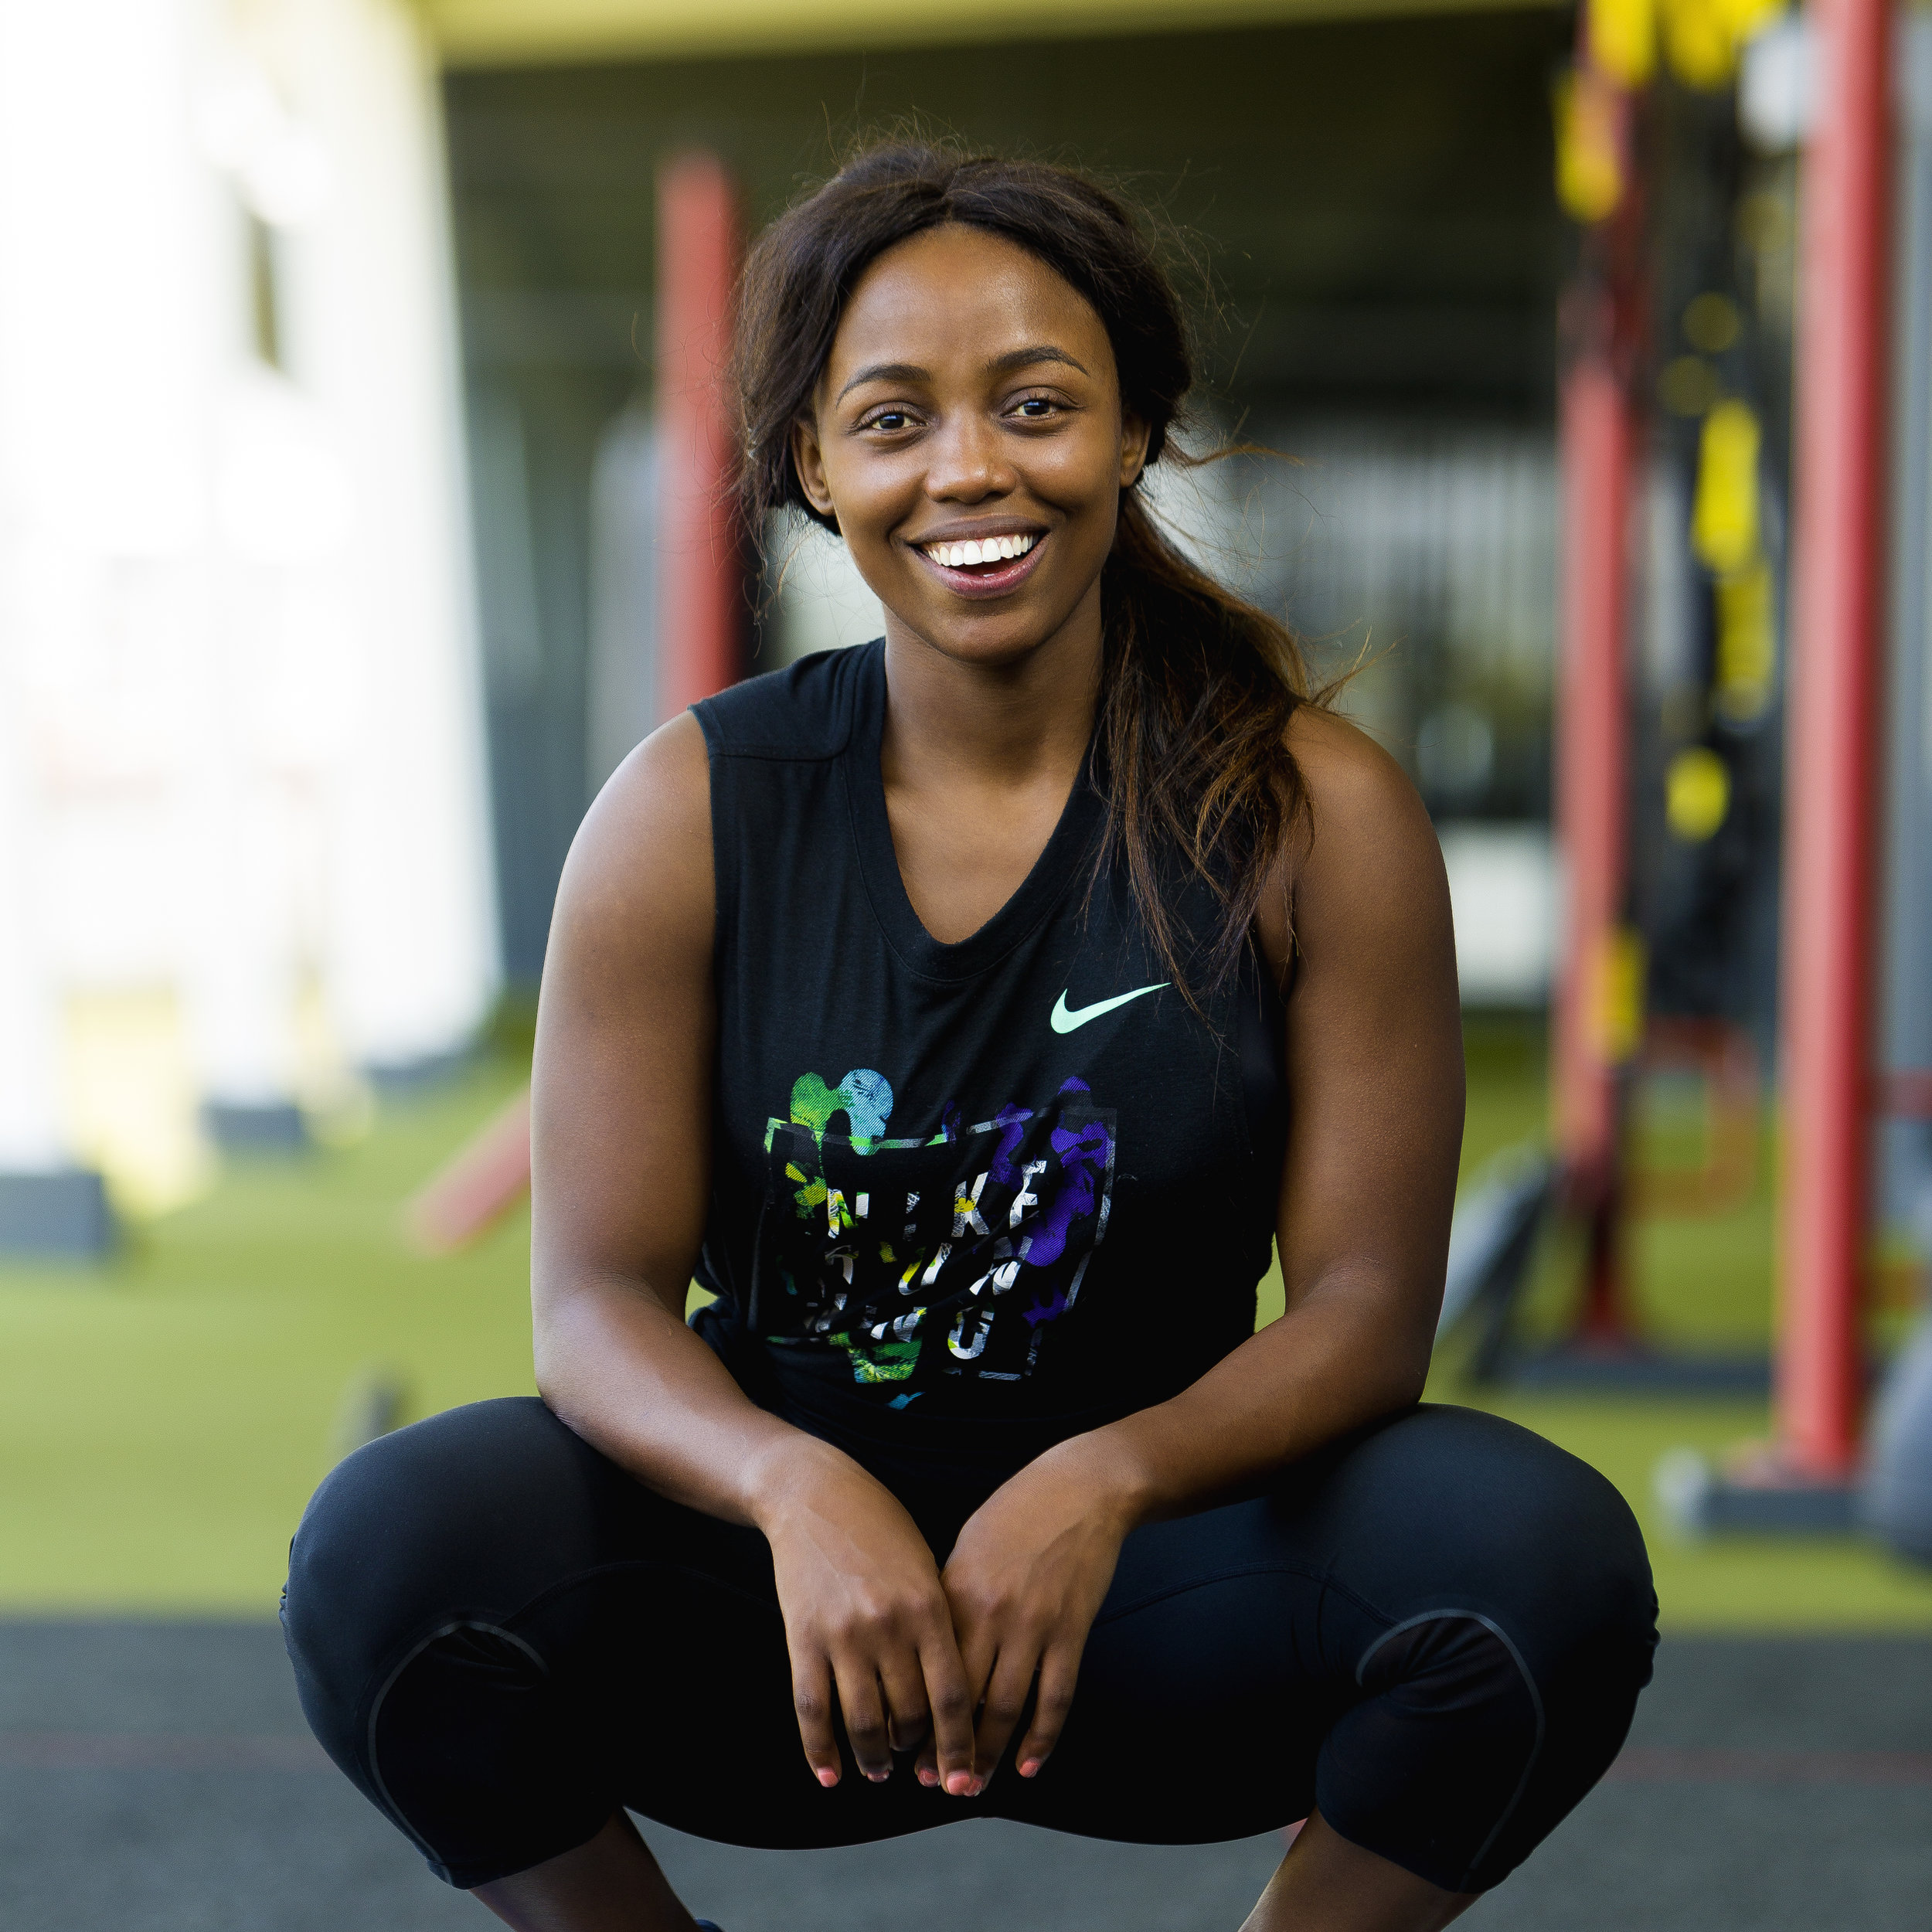 juanita khumalo - cooking show and workout video production